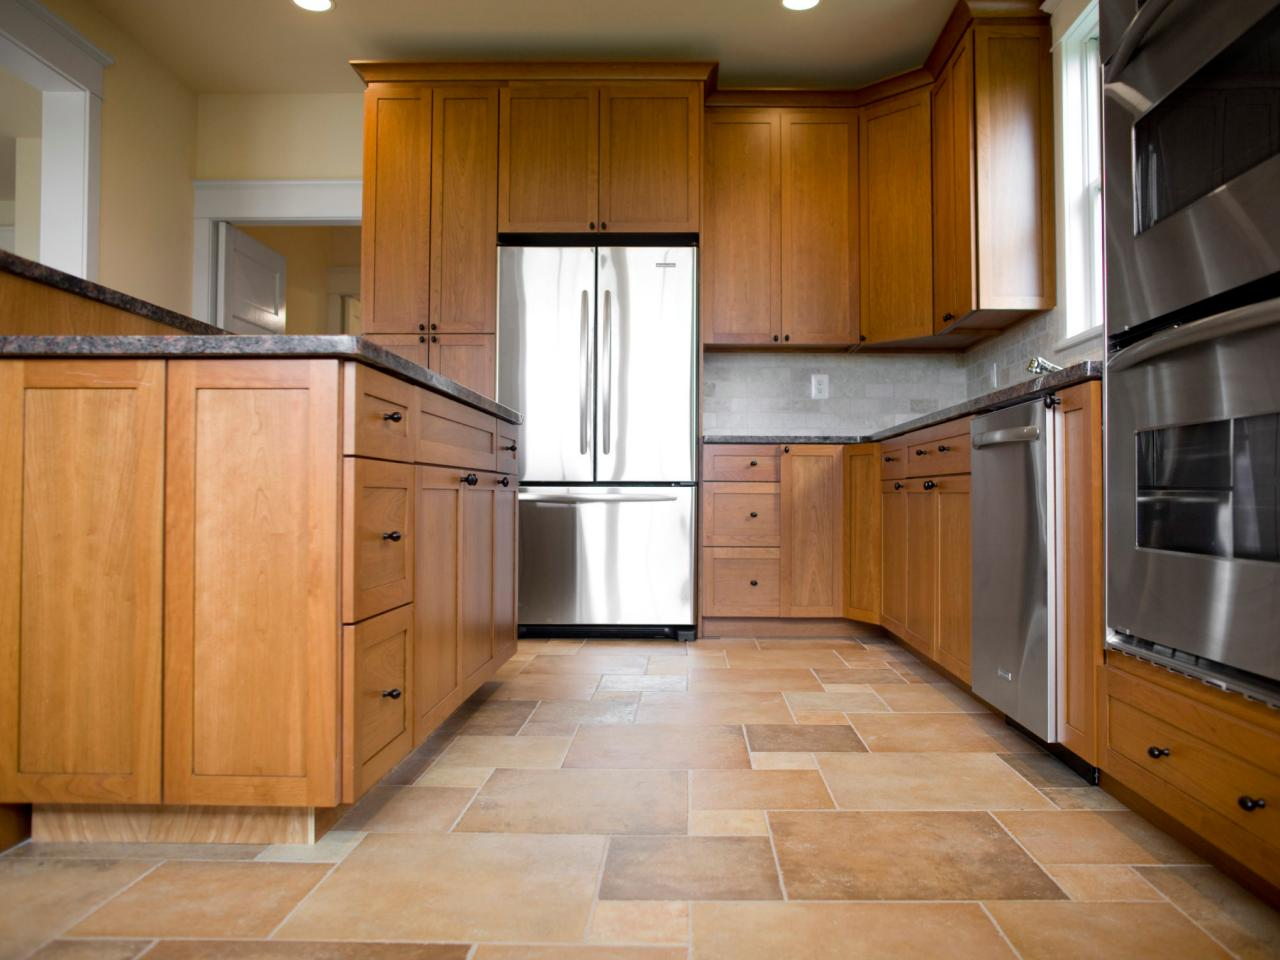 Essential Kitchen Flooring Tile Styles You Need to Know